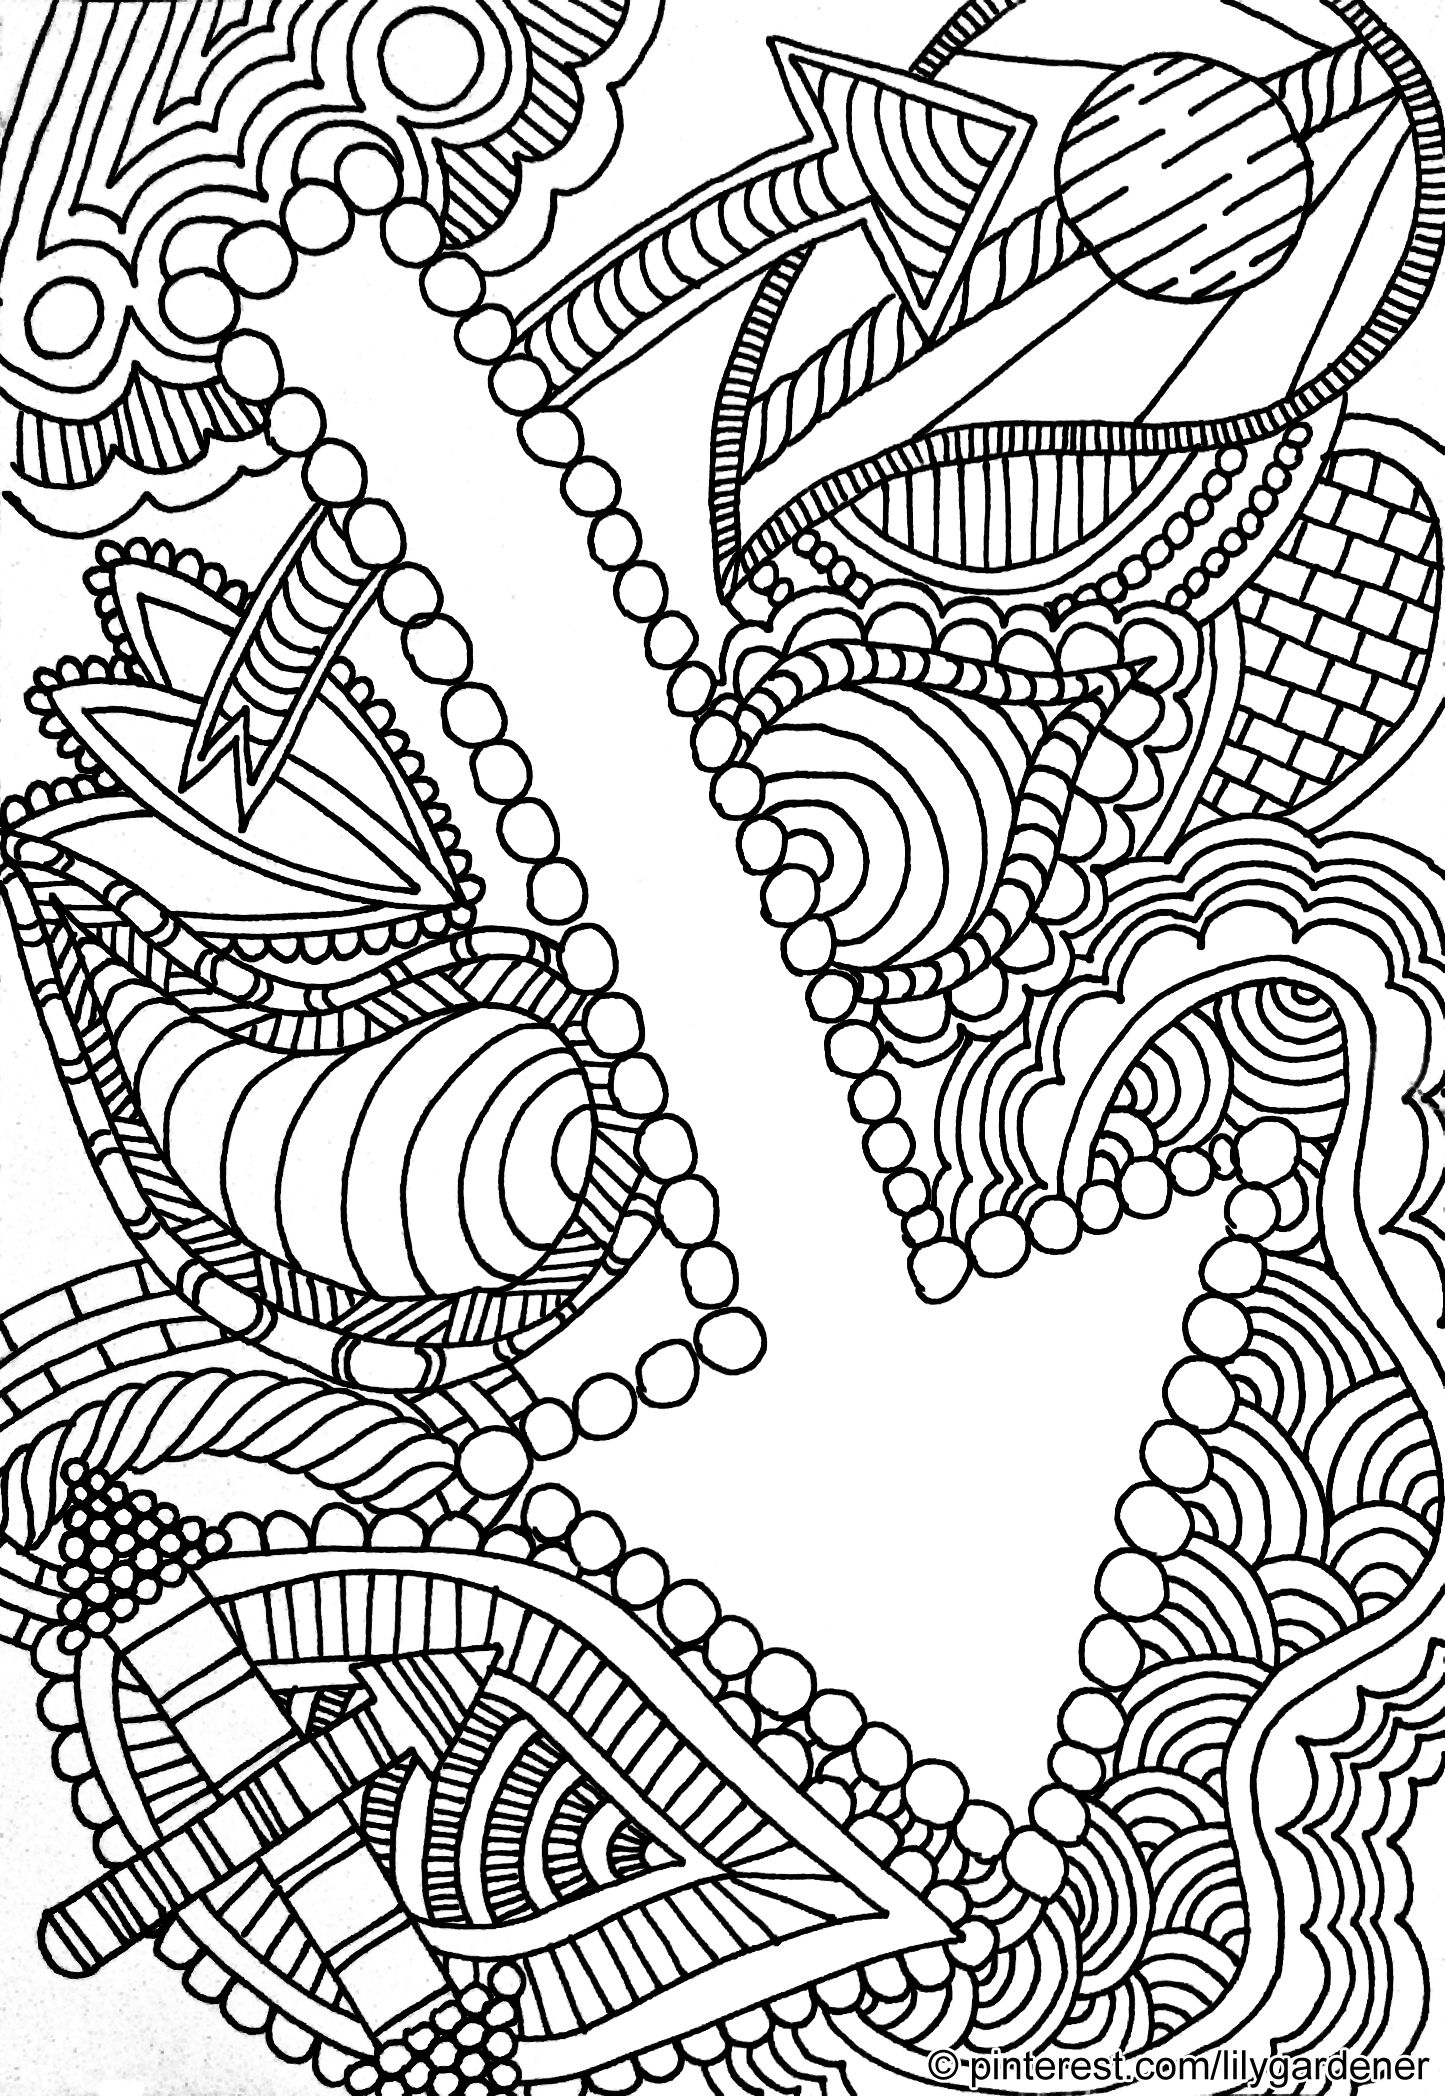 free abstract coloring pages free printable abstract coloring pages for kids pages free coloring abstract